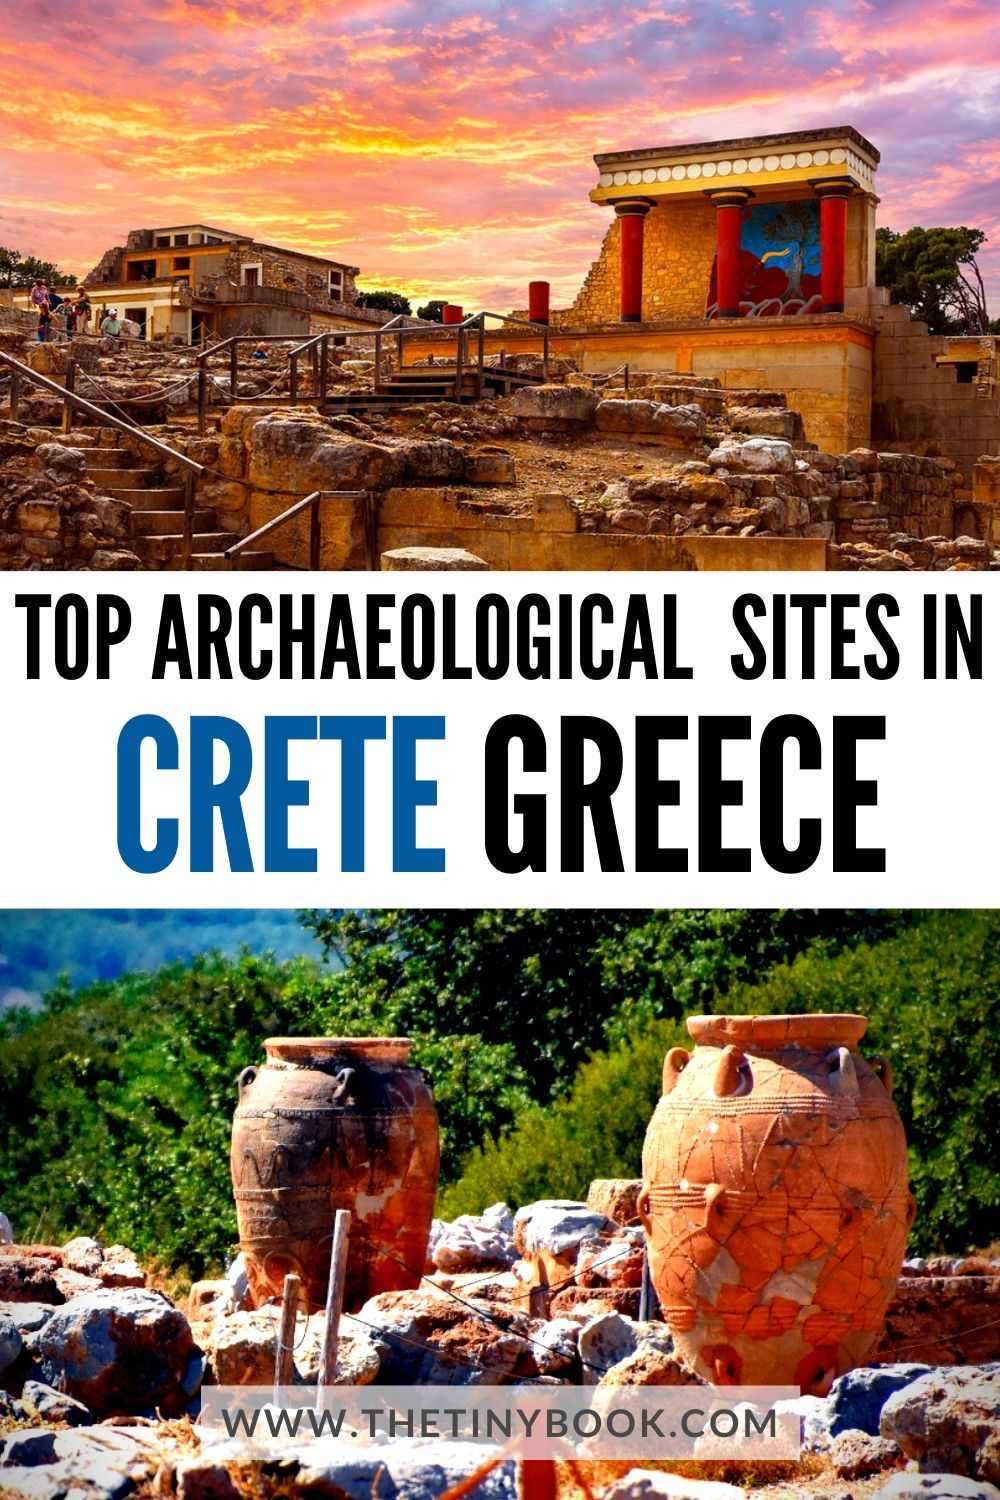 Discover the most stunning archaeological sites in Crete, Greece